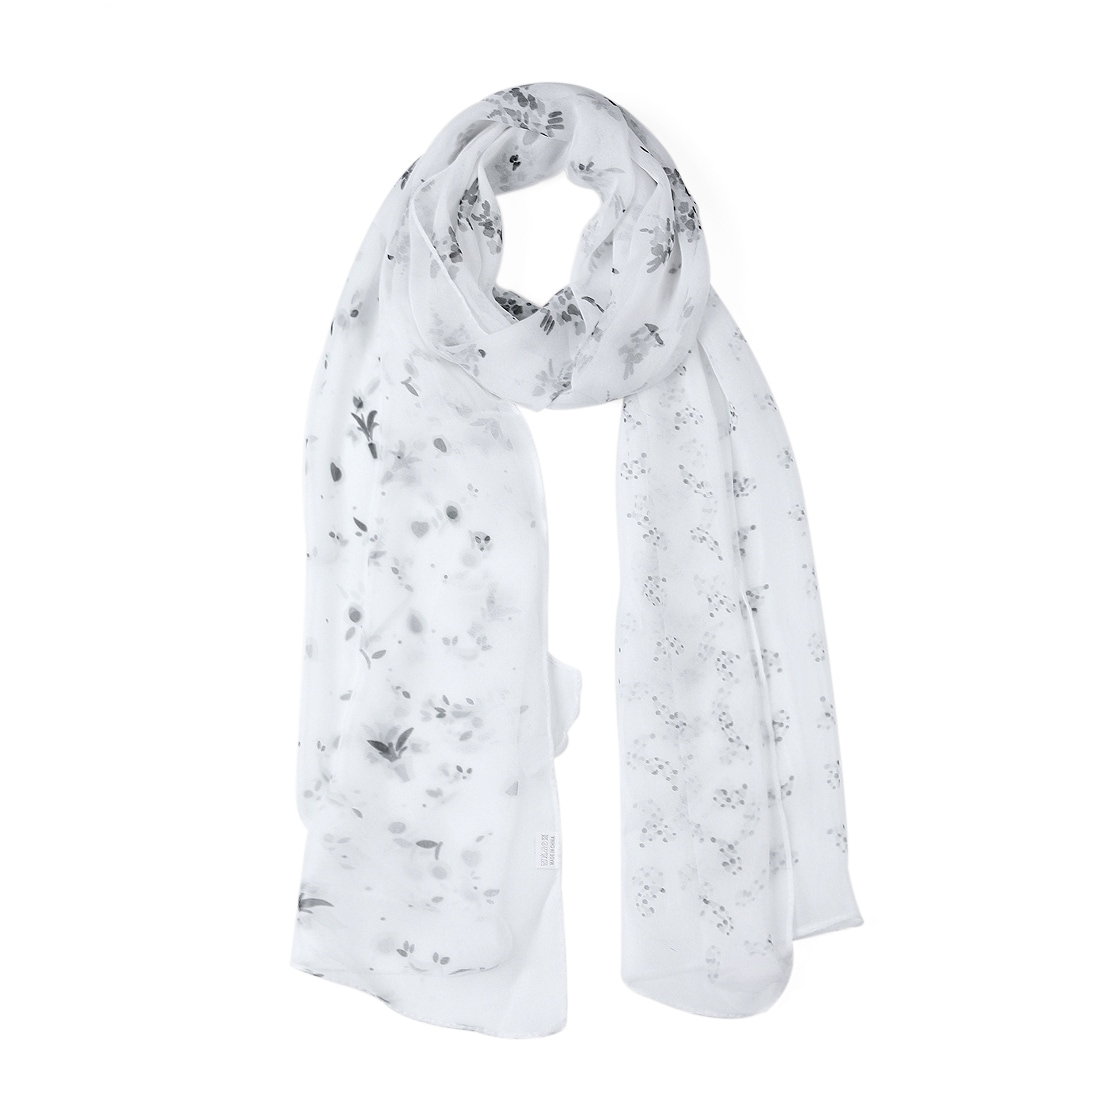 12159c74b4e Buy Scarves Online at Overstock | Our Best Scarves & Wraps Deals